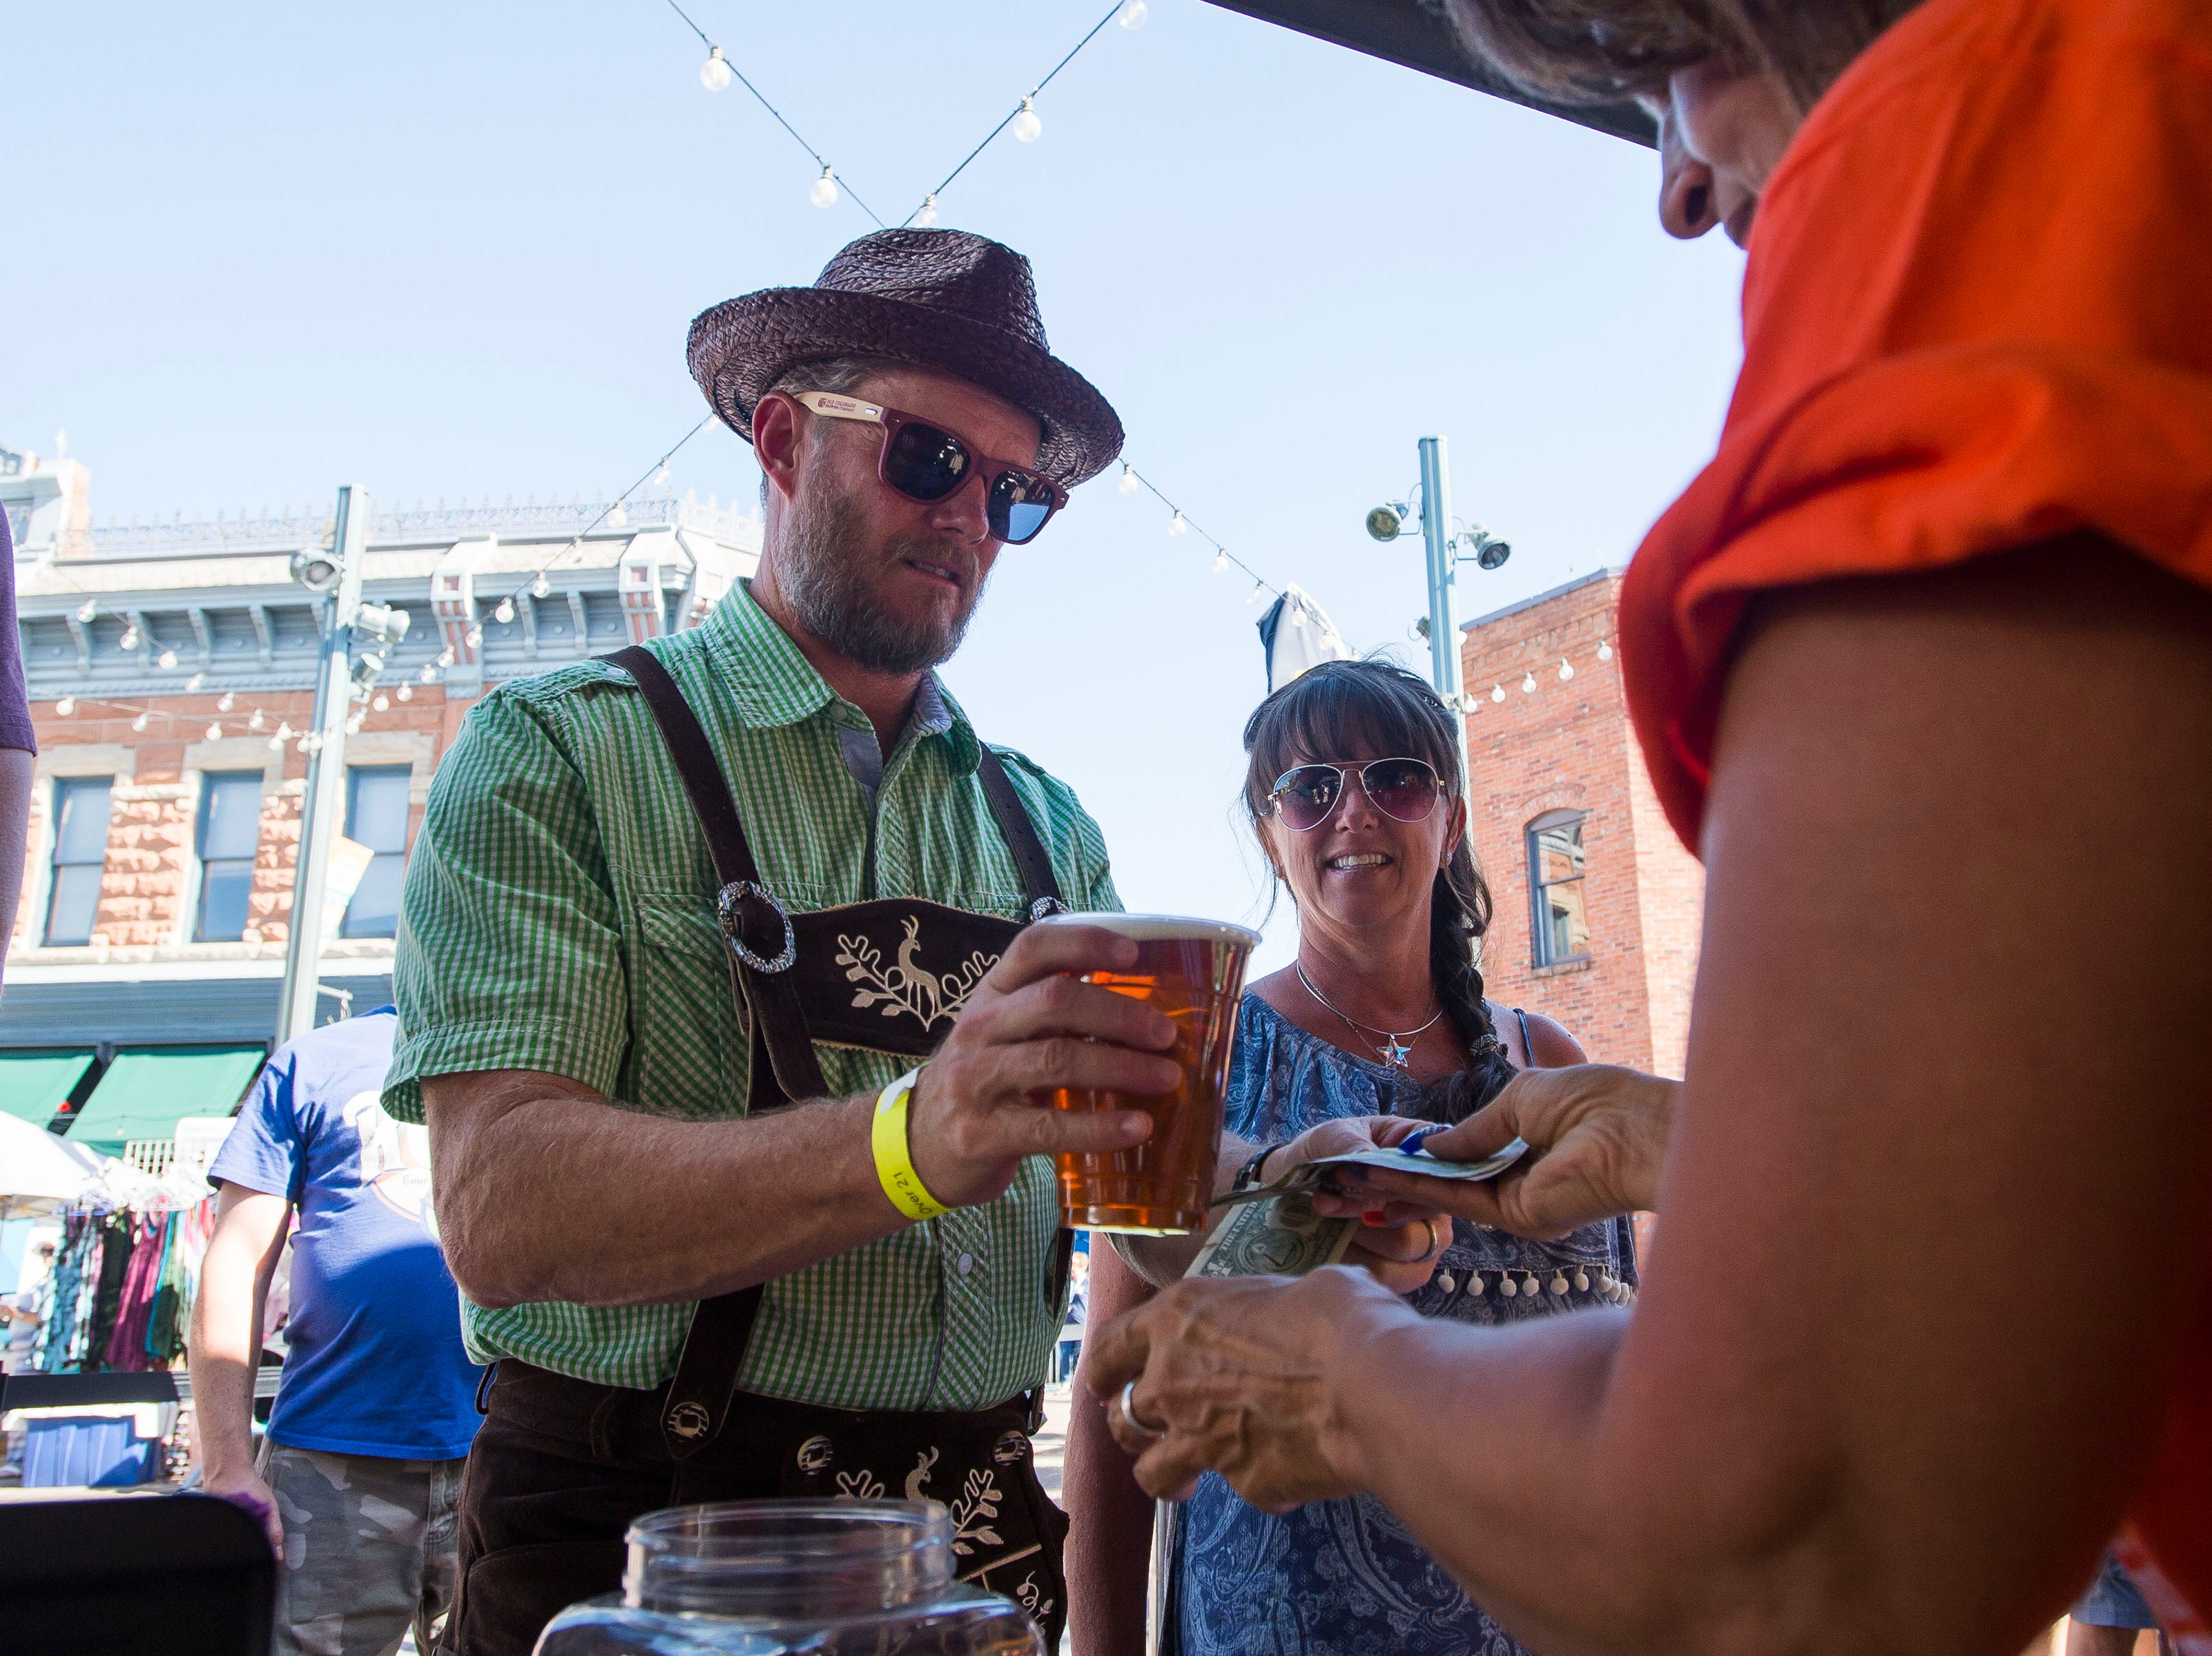 Volunteer Elaine Stewart, right, hands Mike Patterson a beer while Elisabeth Patterson waits on her wine during Fortoberfest 2018 on Saturday, Sept. 15, 2018, at Old Town Square in Fort Collins, Colo.